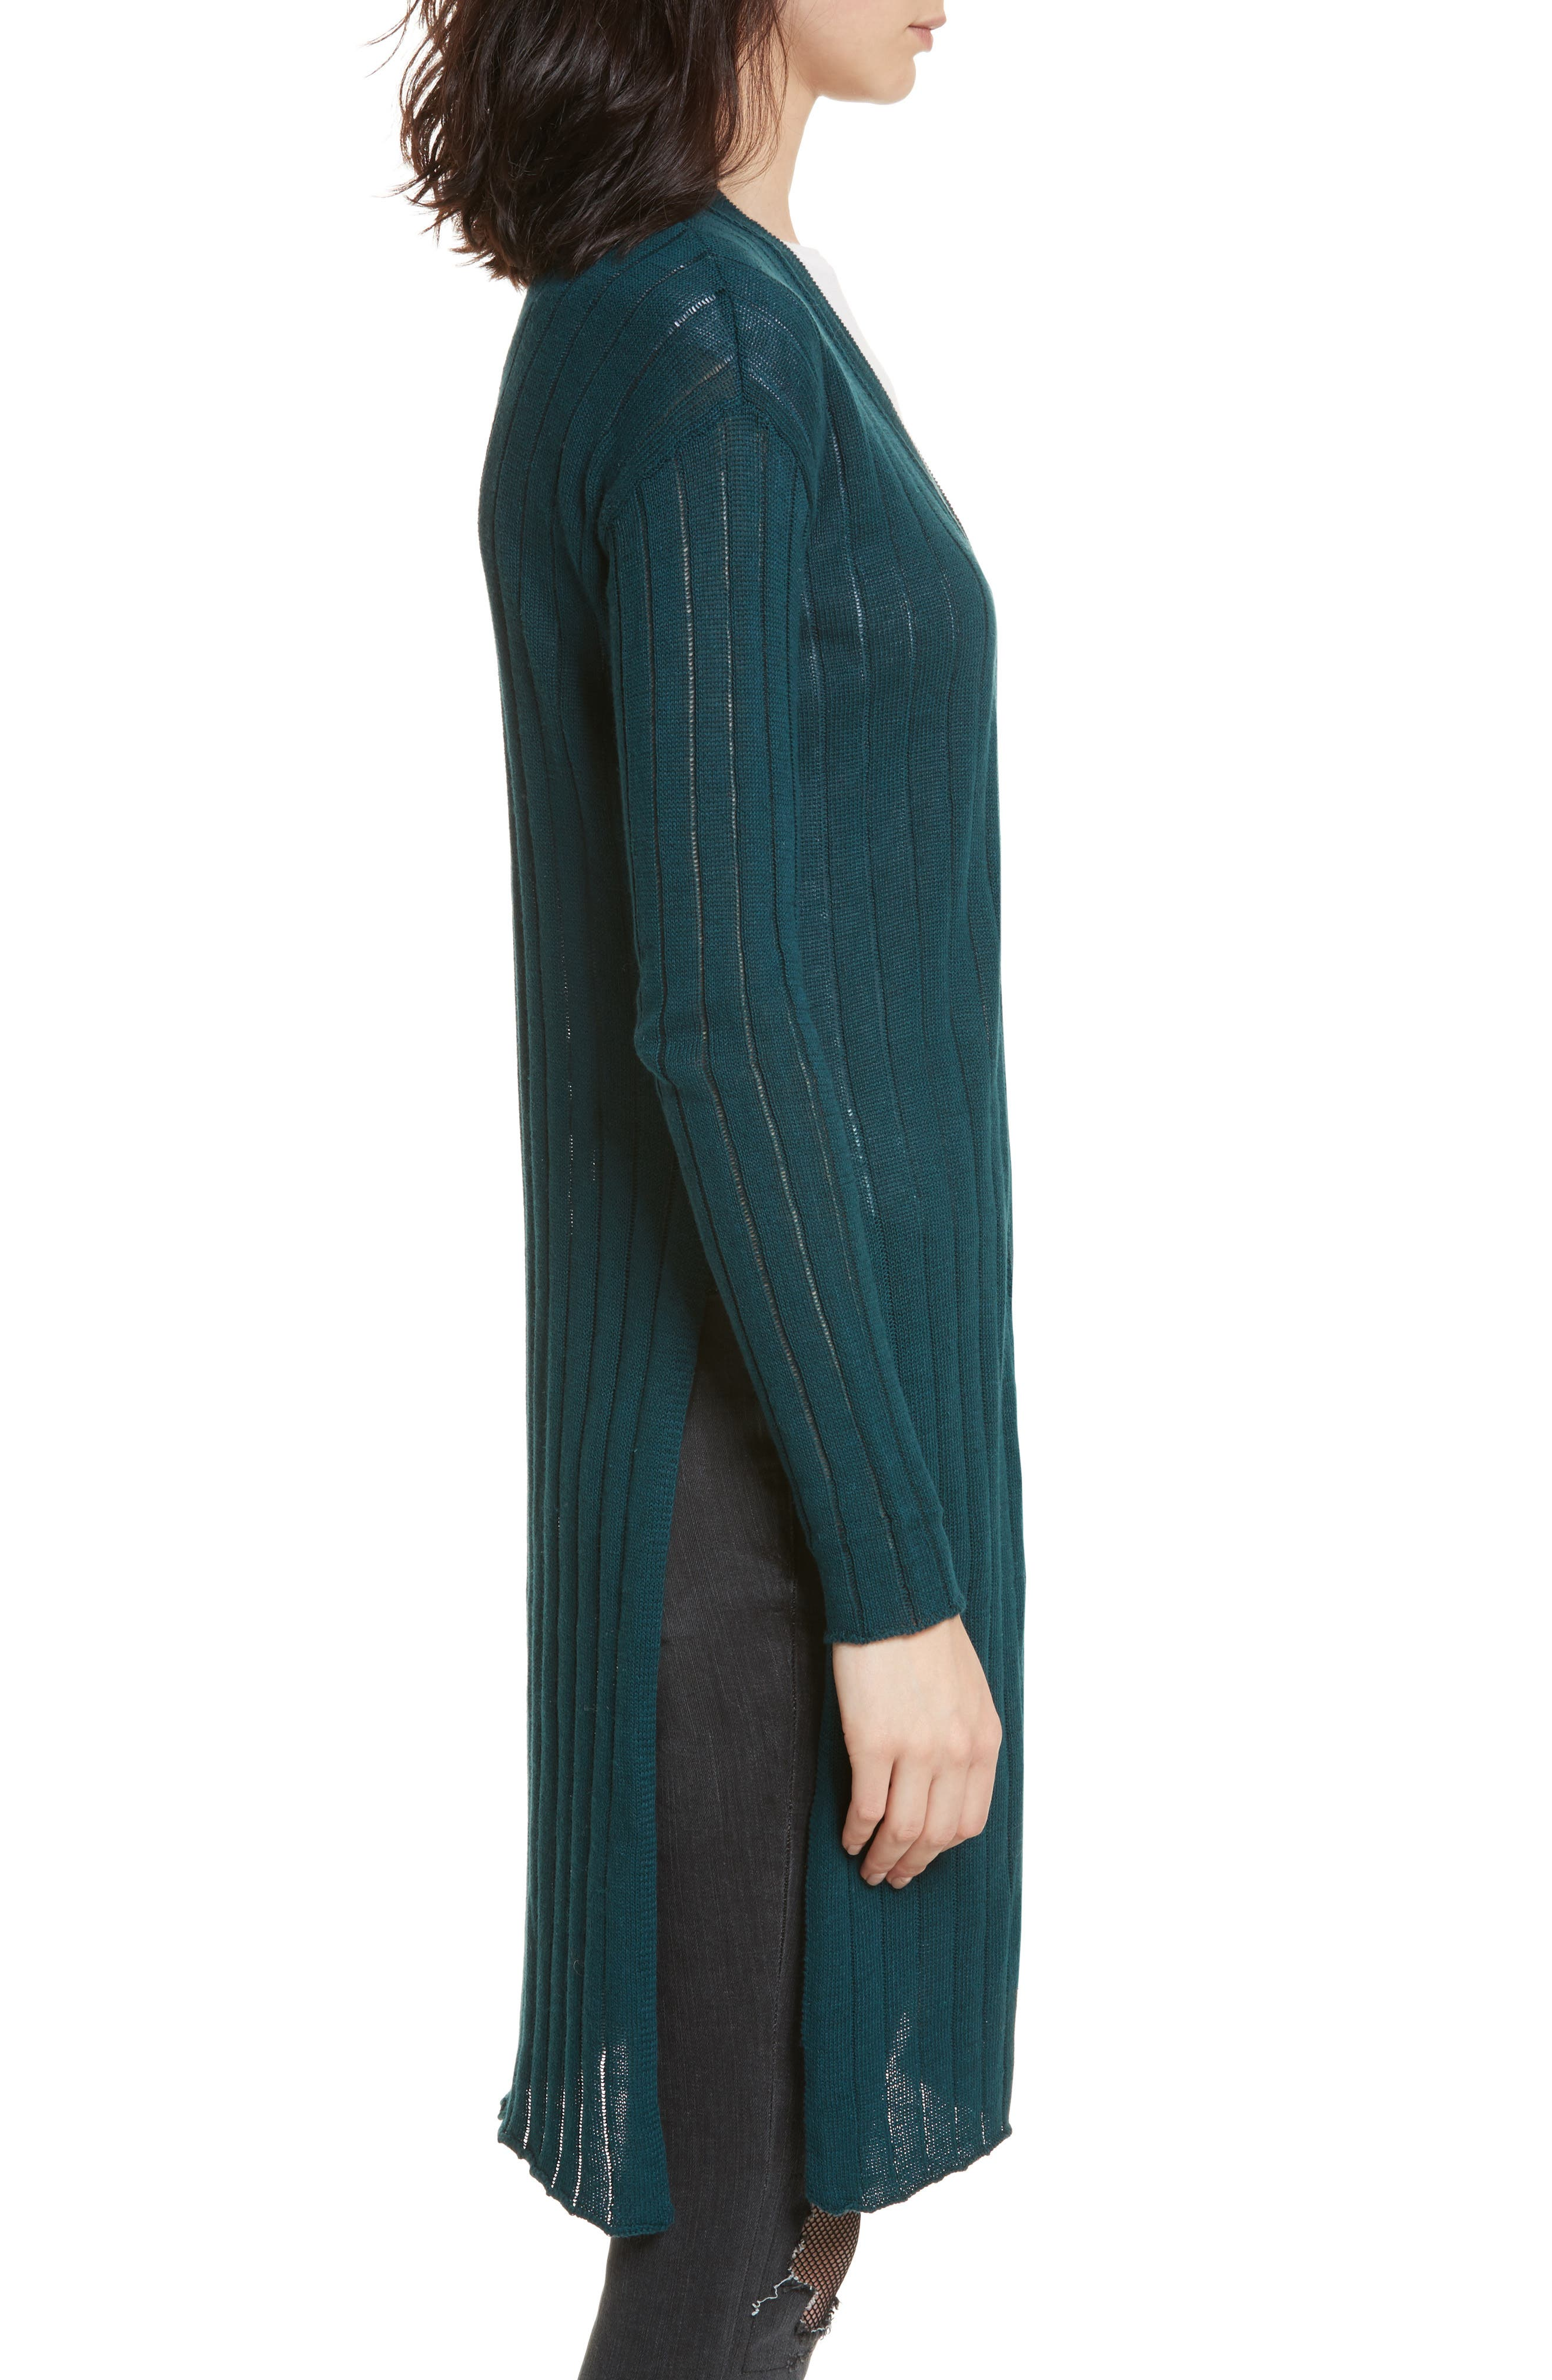 FREE PEOPLE,                             Ribby Long Cardigan,                             Alternate thumbnail 3, color,                             440